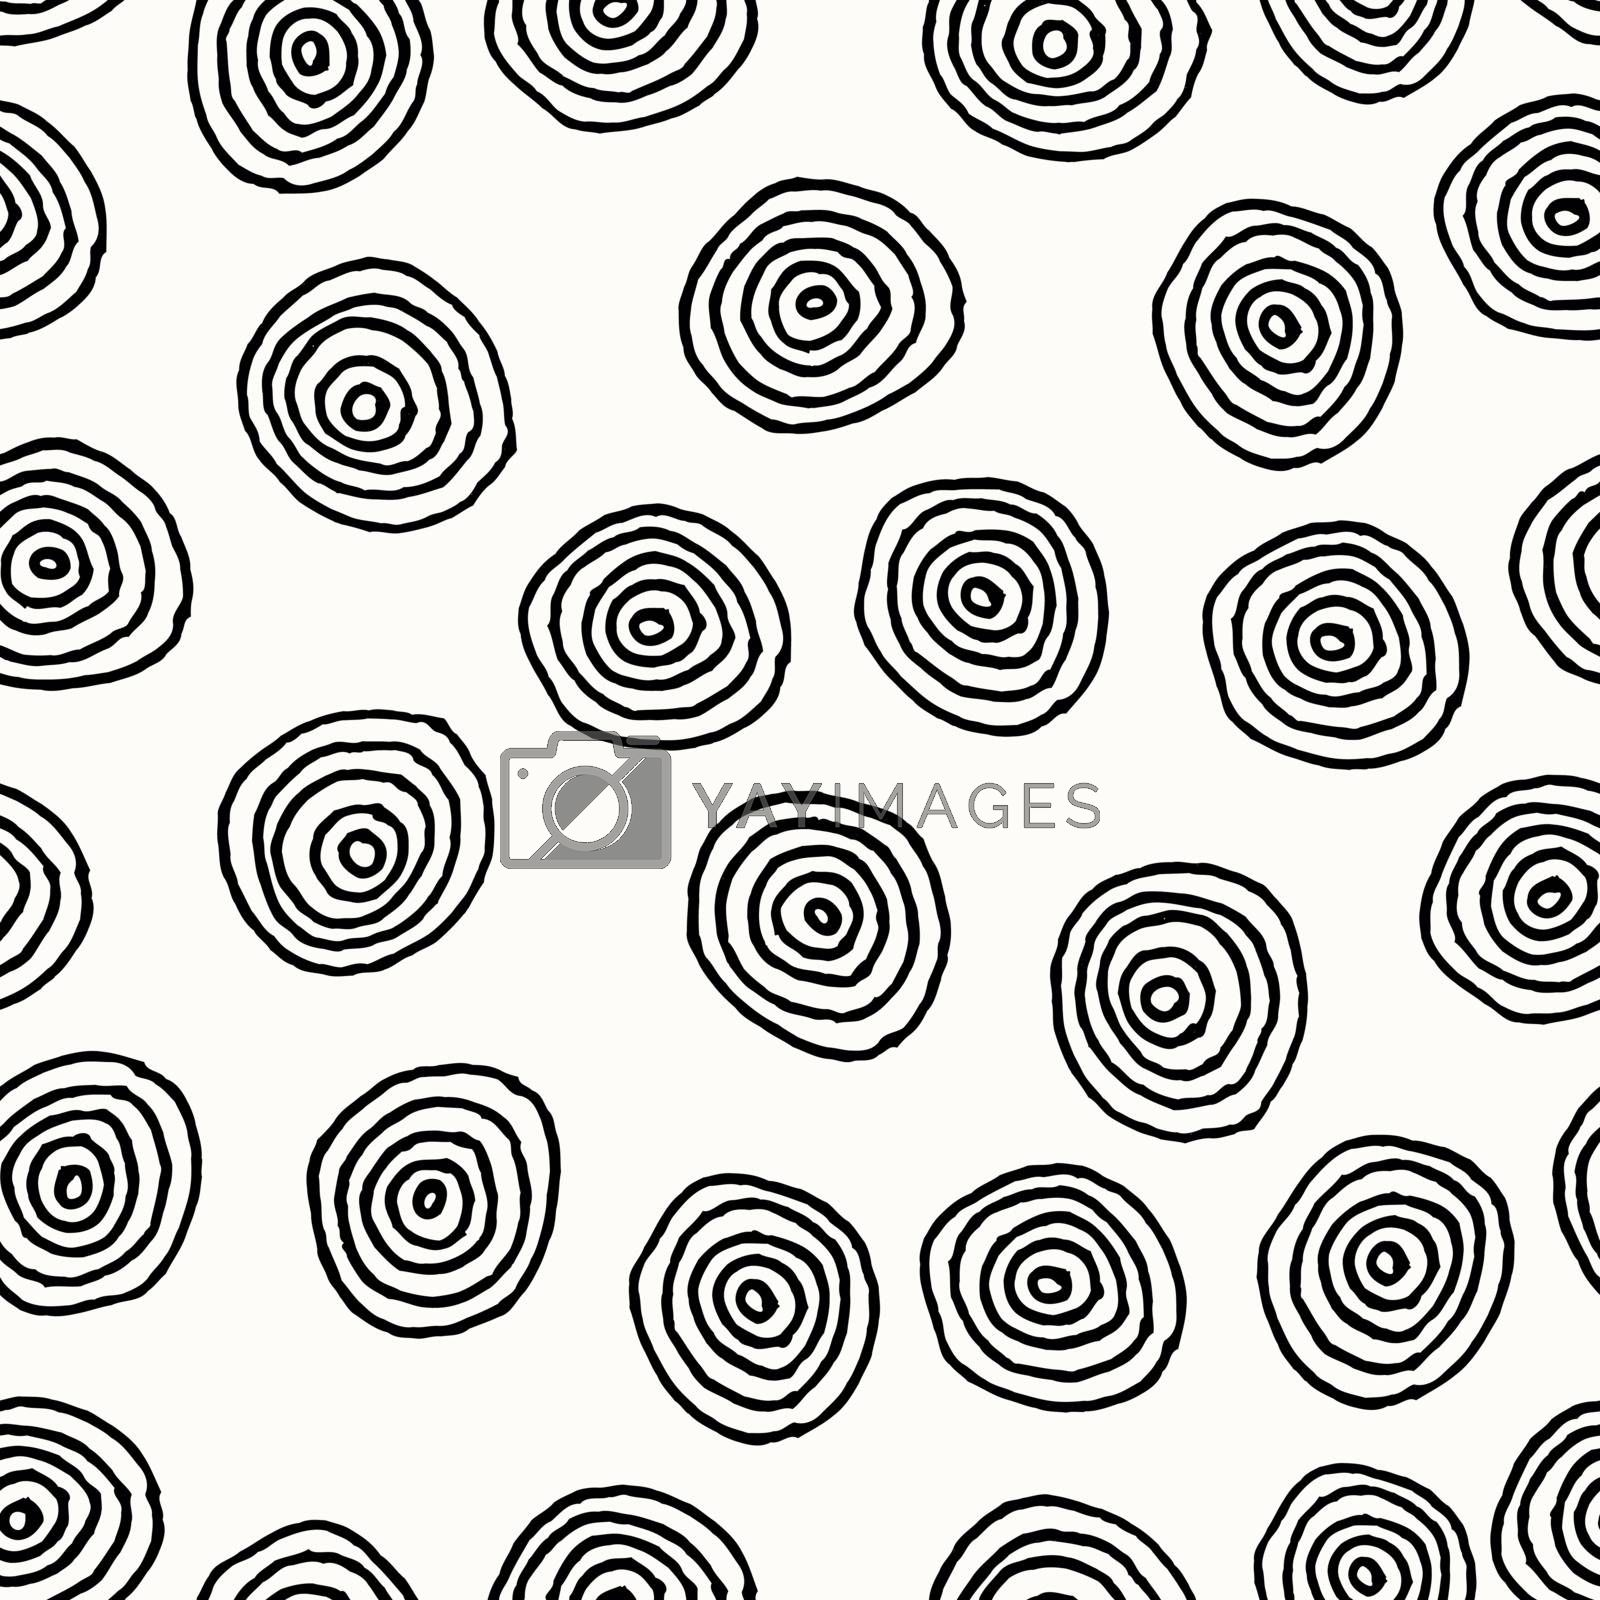 Hand drawn abstract seamless repeat pattern with round shapes in black and white.